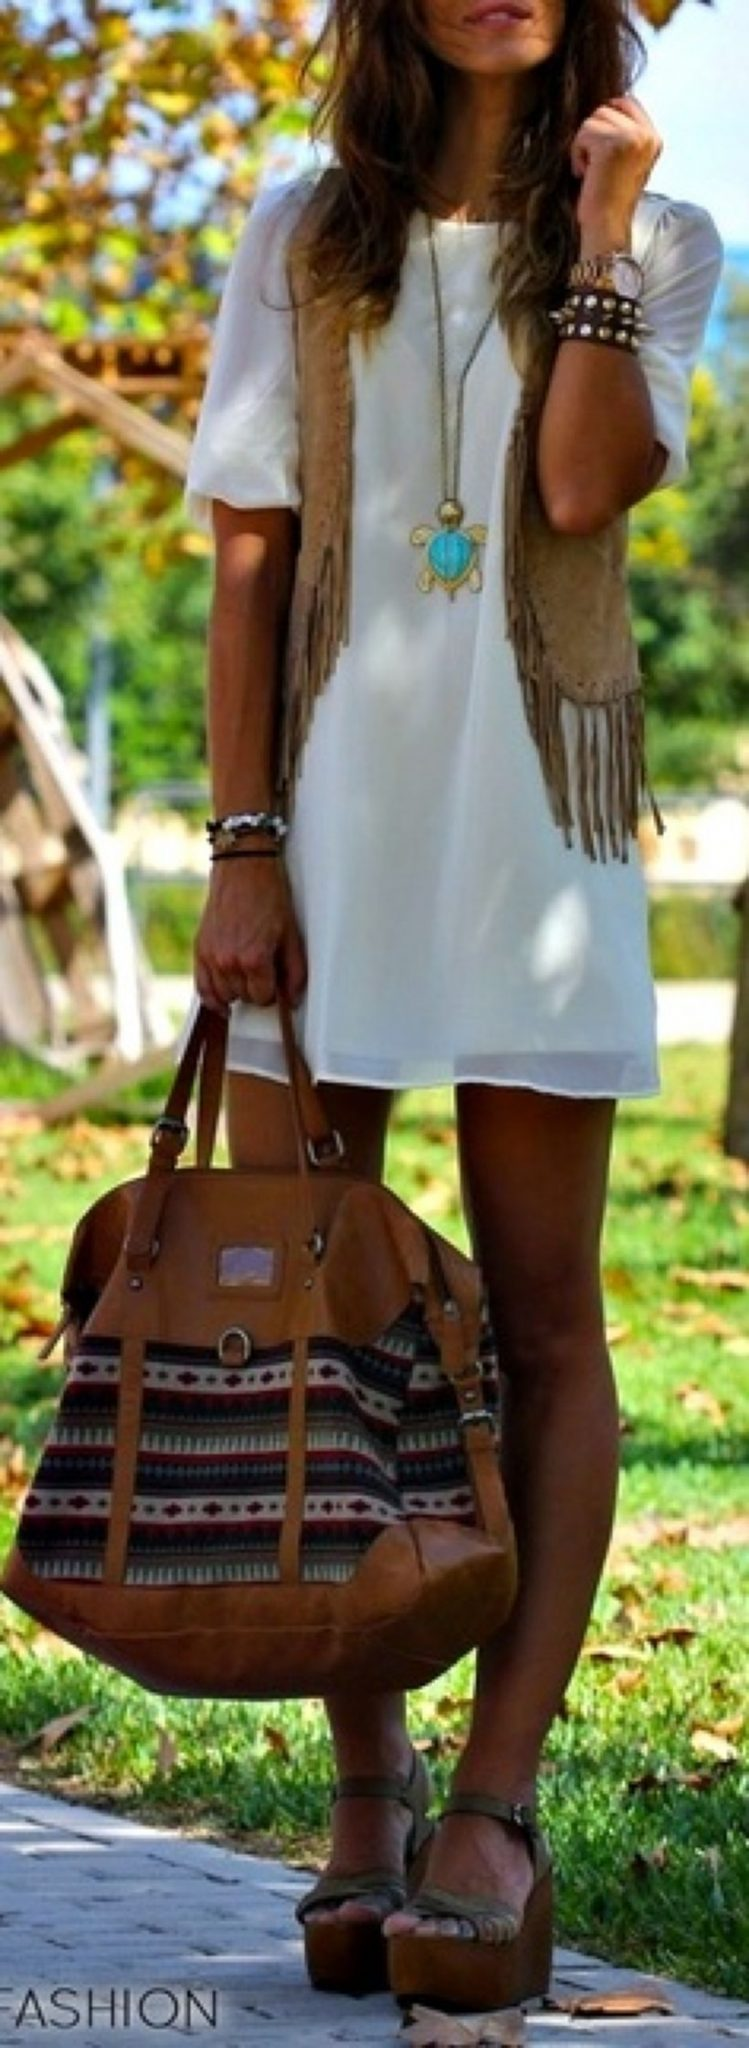 Vintage chic fashion outfits ideas 28